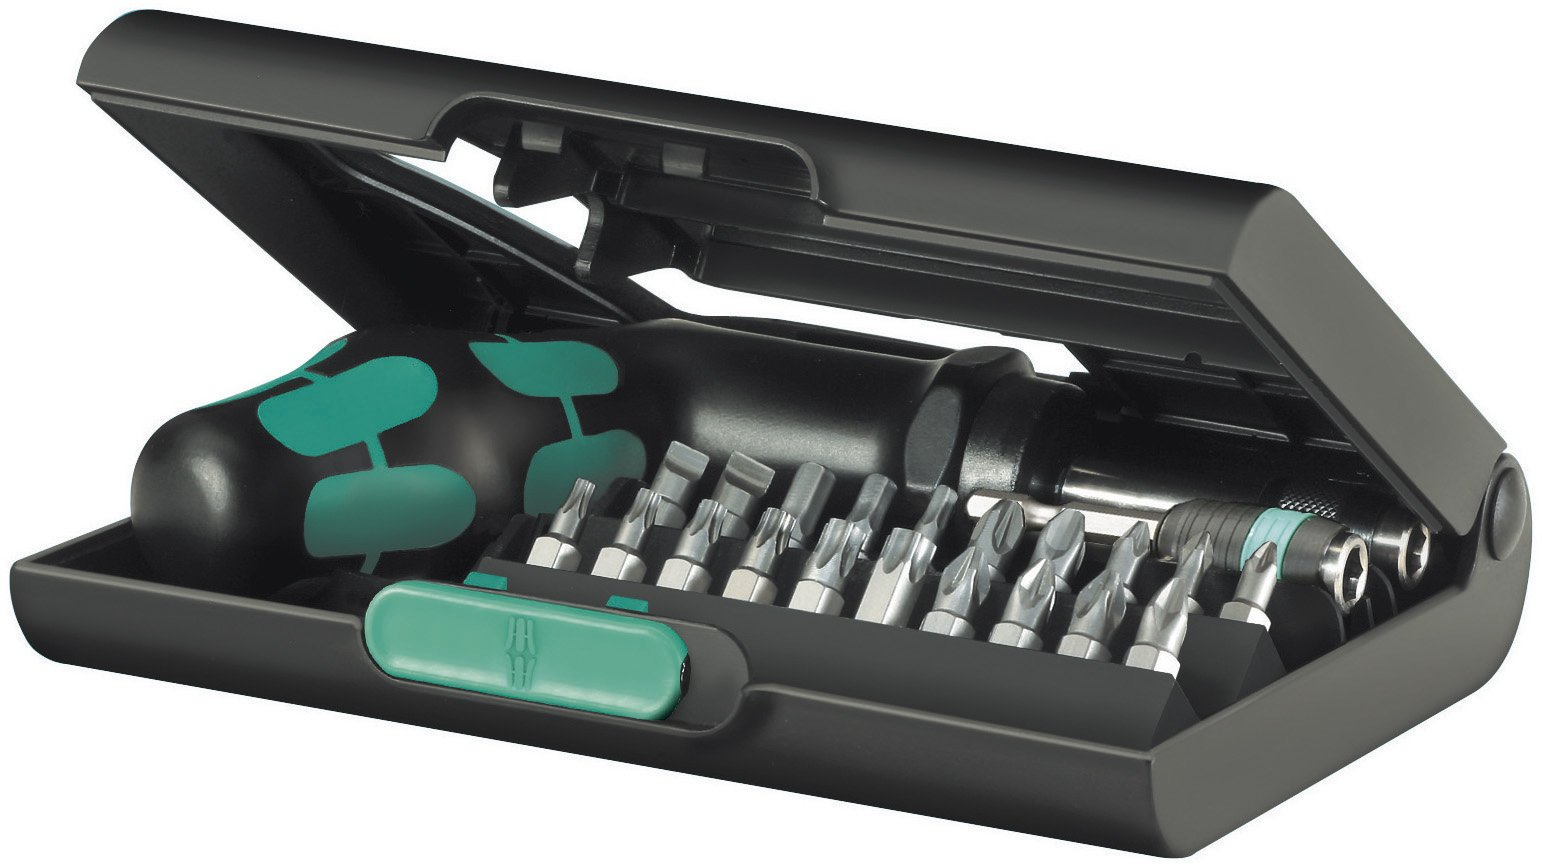 Wera KK 90 SAE Kraftform Ratchet and Bit Set with Rapidaptor One-Hand Technology, 22-Piece